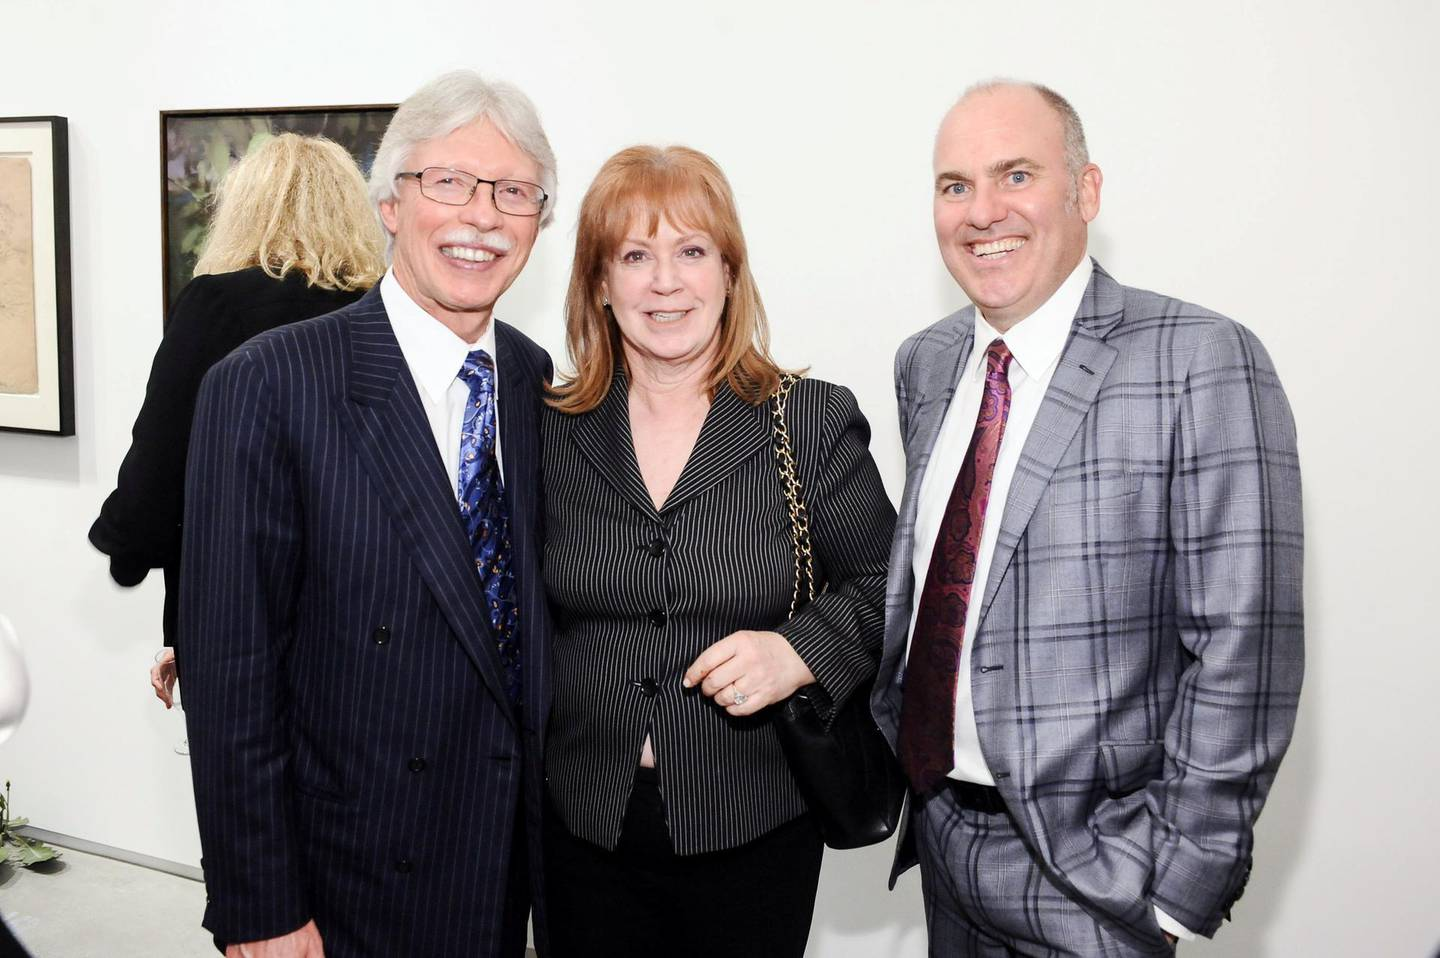 EL SEGUNDO, CA - JANUARY 25: Richard Lundquist, Melanie Lundquis and Brian Sweeney attend ESMoA Celebrates Opening Experience With DESIRE Exhibit  at El Segundo Museum of Art on January 25, 2013 in El Segundo, California. (Photo by Stefanie Keenan/WireImage)